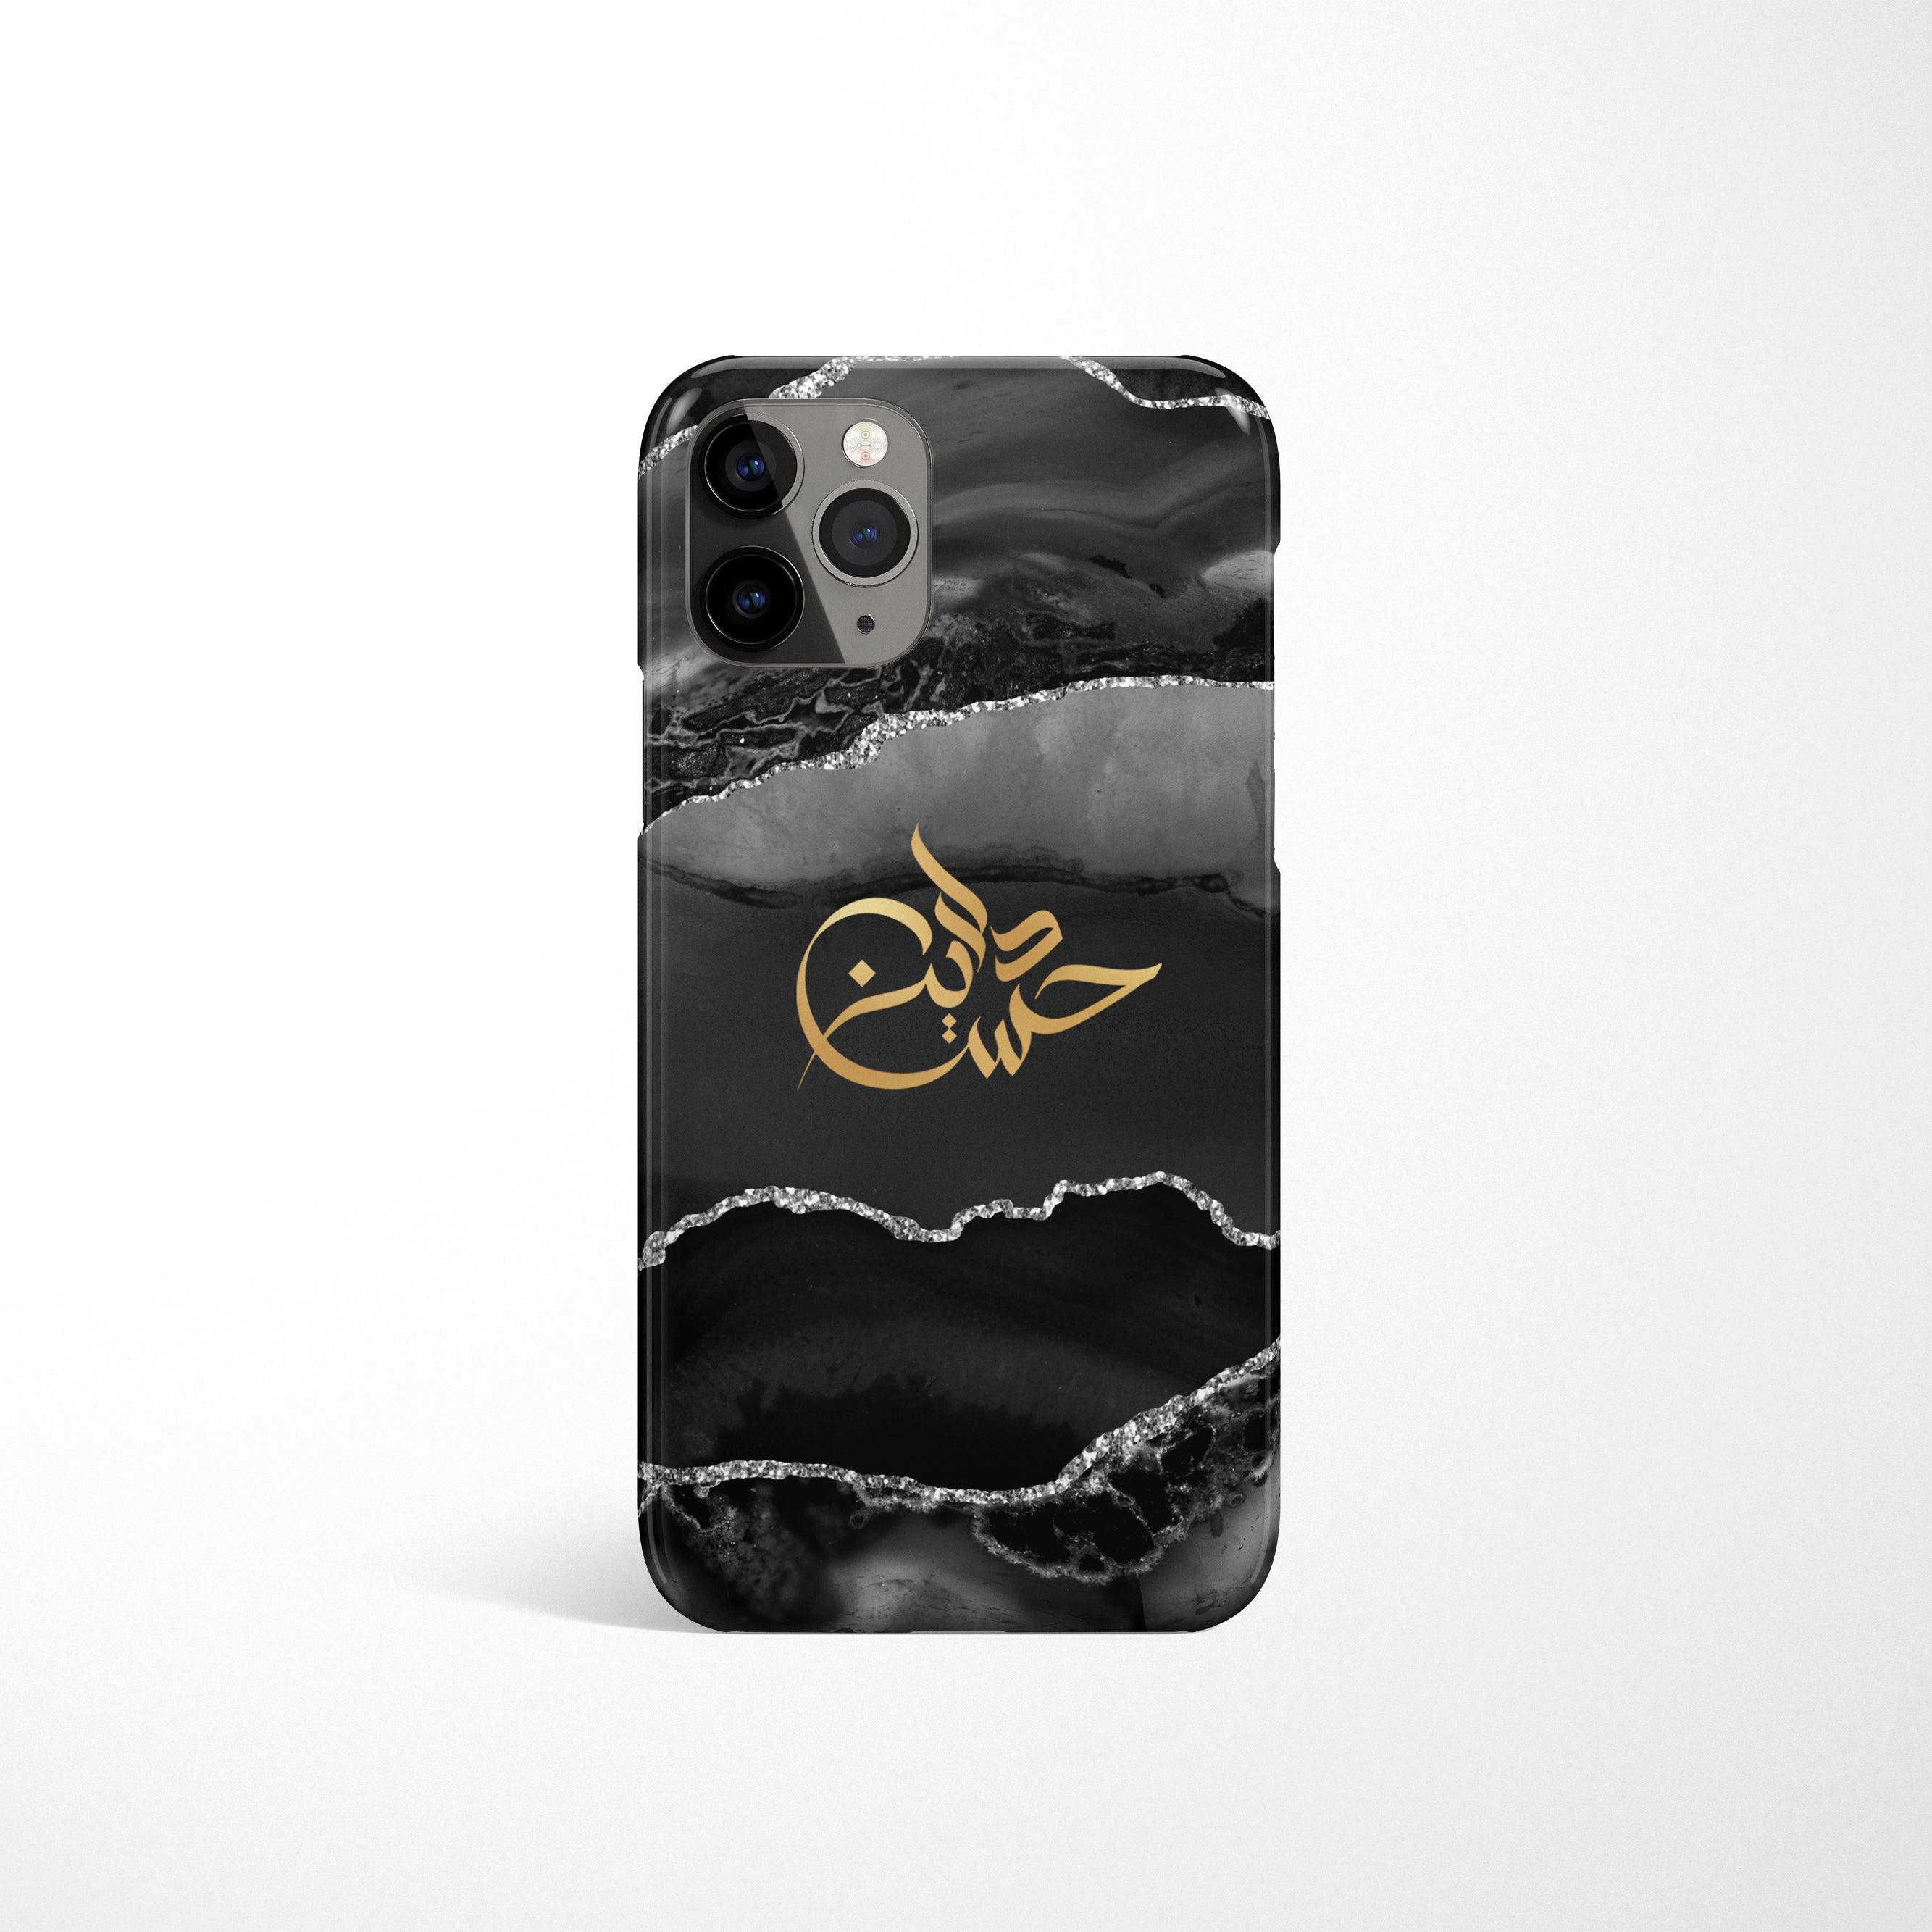 Agate Print with Personalised Name Phone Case - Black & Silver